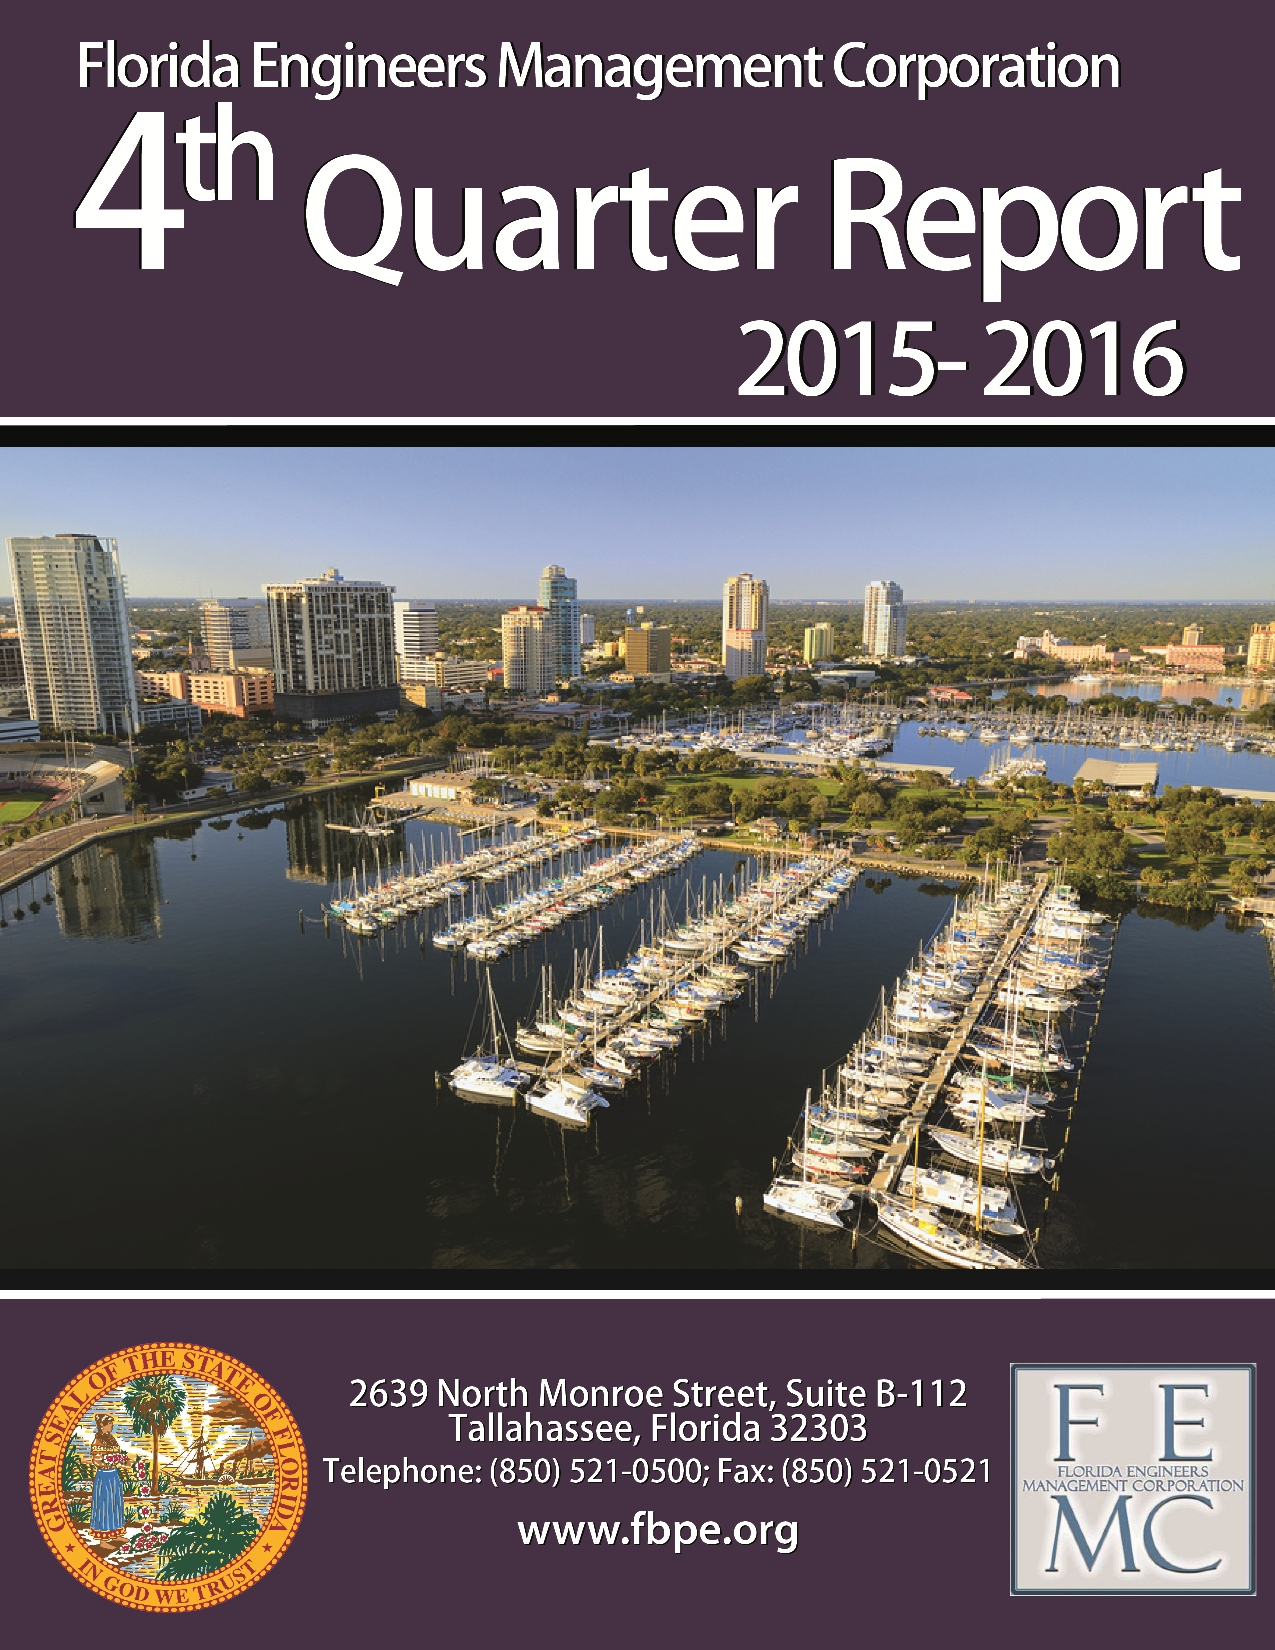 2015-2016 4th qtr report cover-Final-reduced